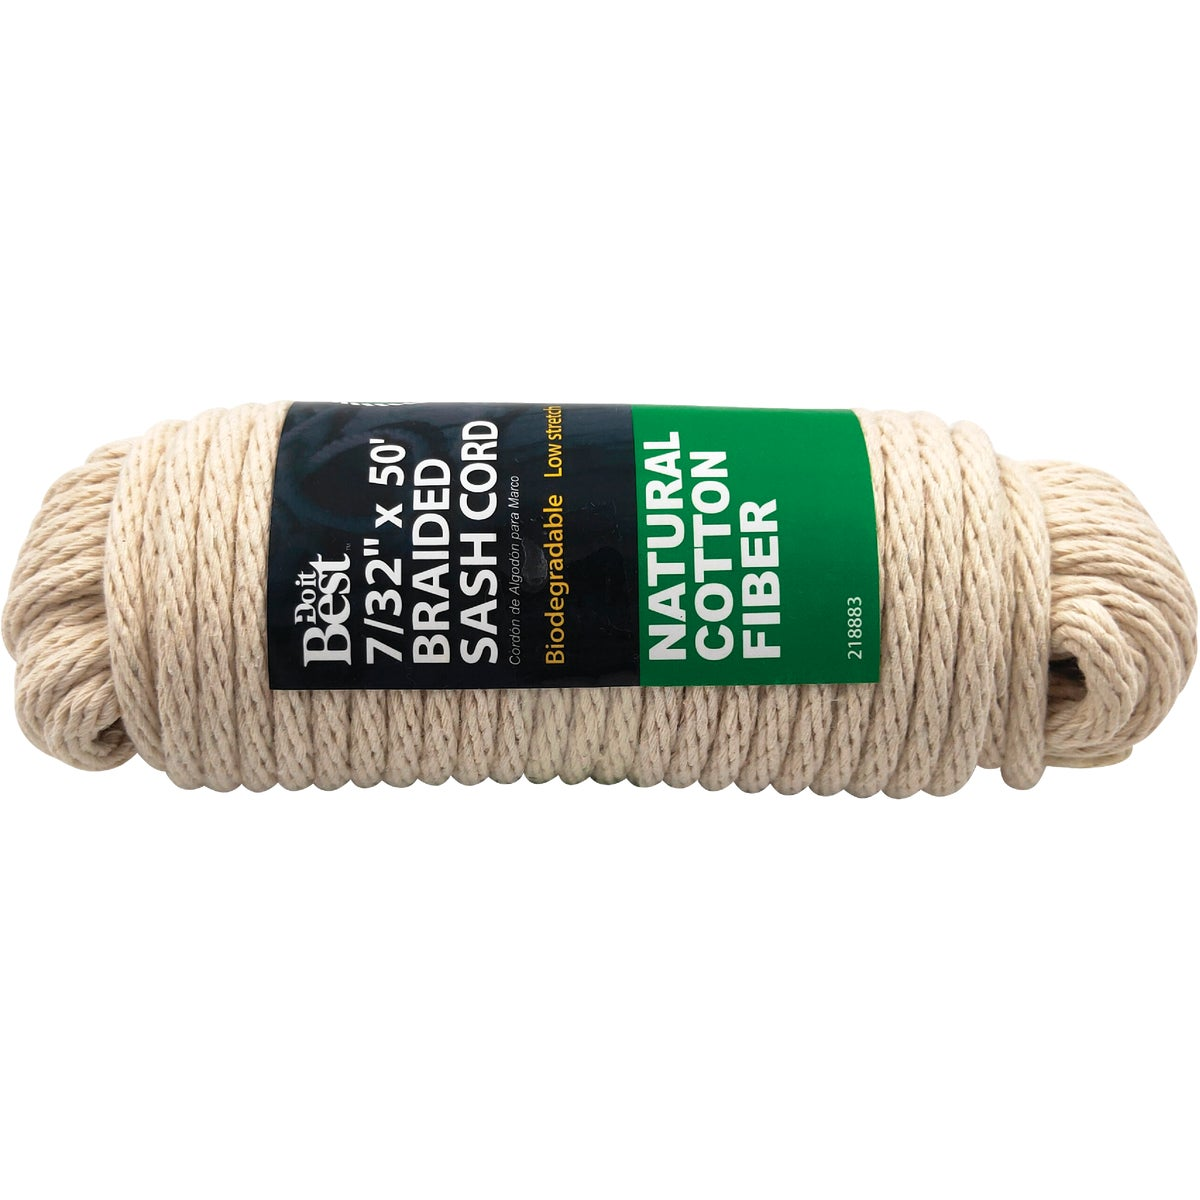 50' #7 COTTON SASH CORD - 218883 by Do it Best